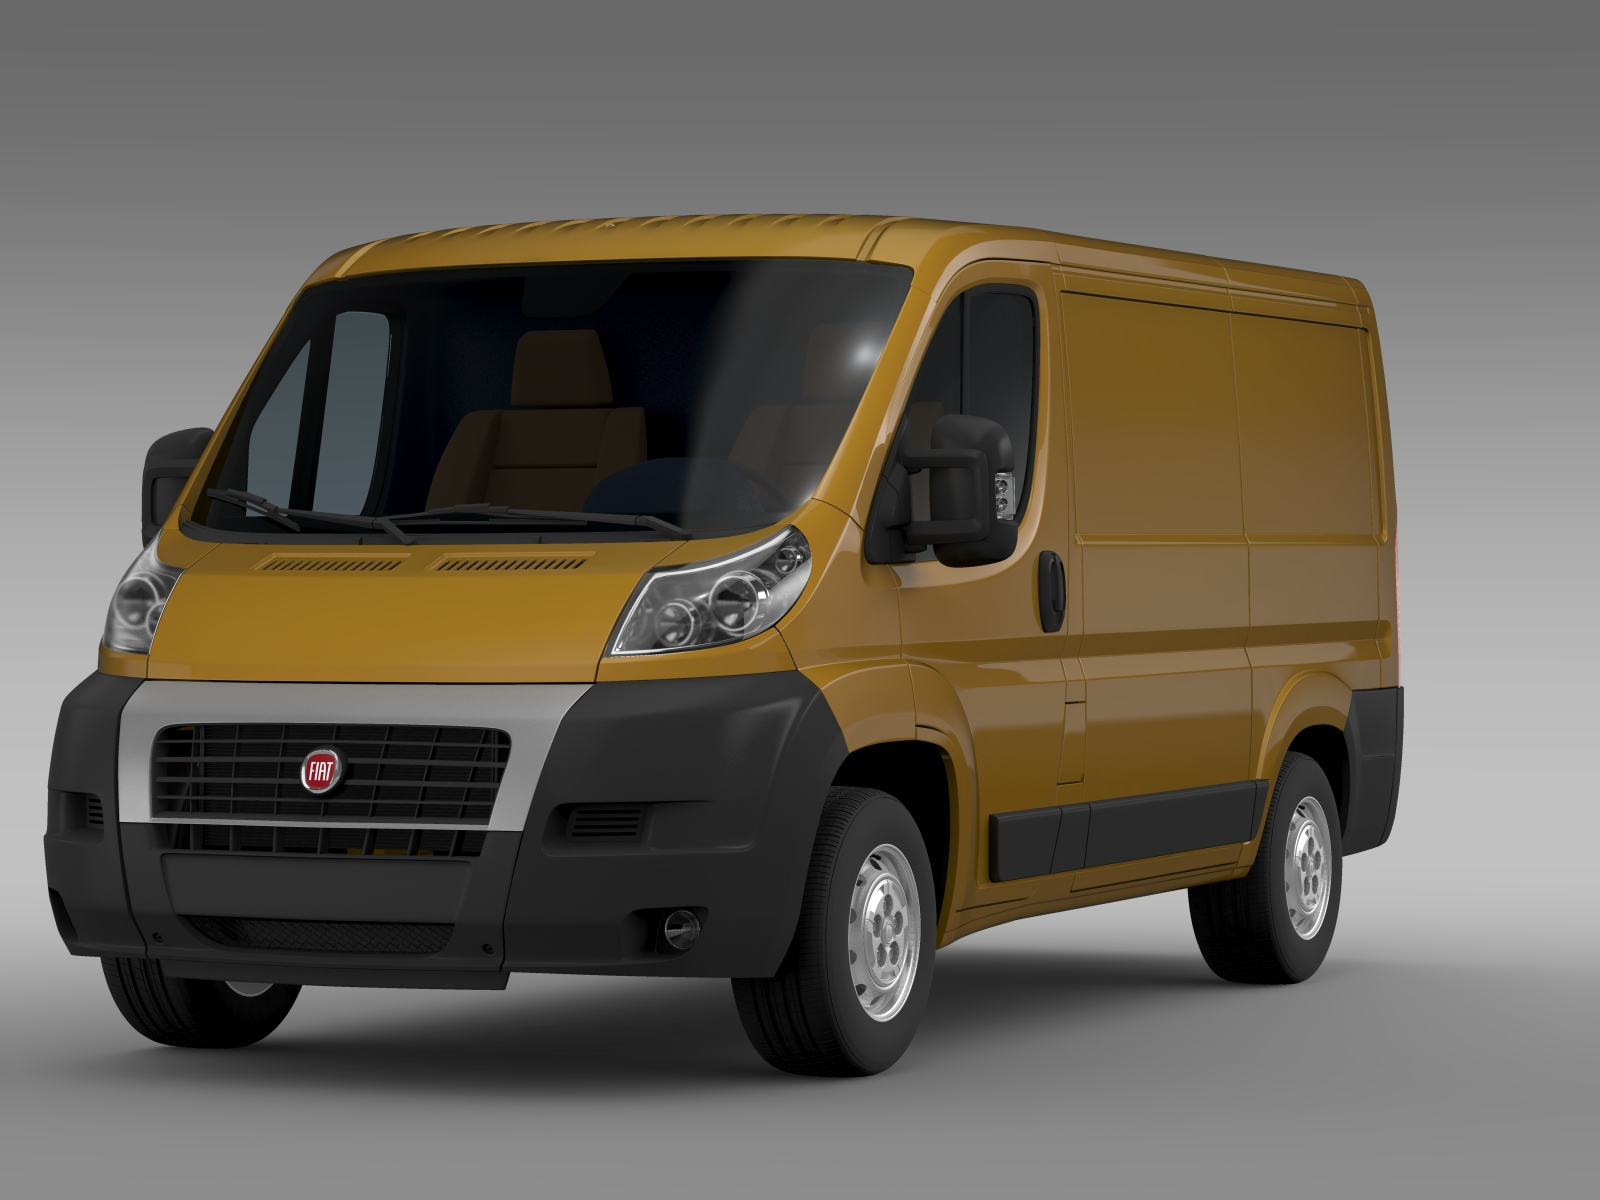 fiat ducato van l1h1 2006 2014 3d model buy fiat ducato van l1h1 2006 2014 3d model flatpyramid. Black Bedroom Furniture Sets. Home Design Ideas